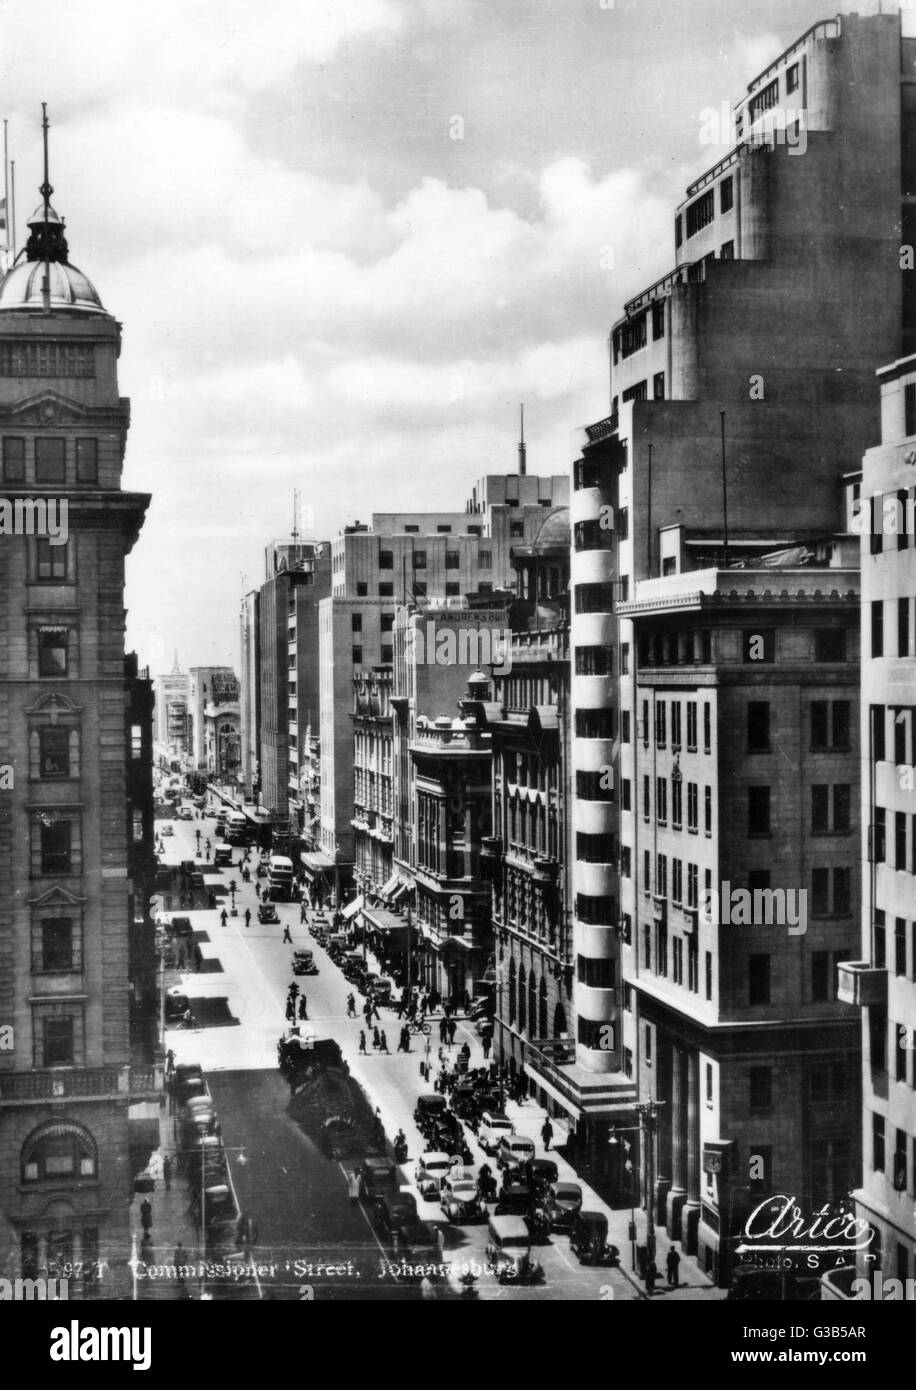 Looking down onto Commissioner  Street        Date: 1930s - Stock Image